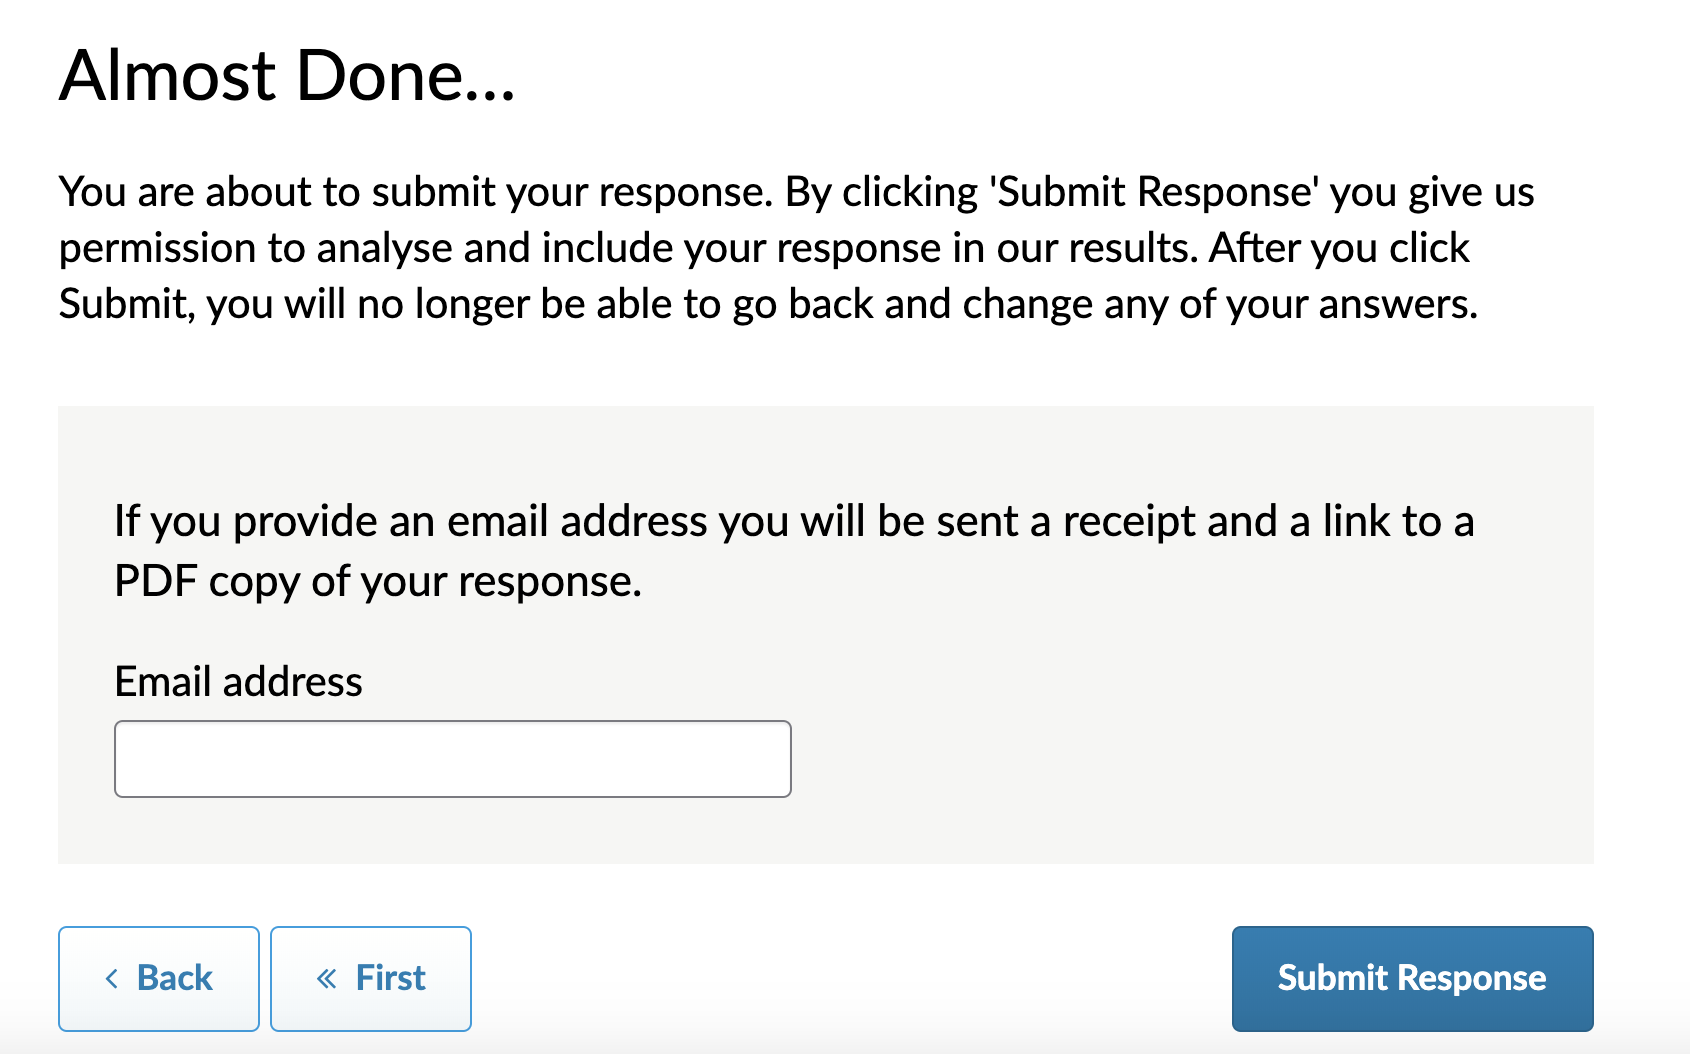 Almost Done page when email question is not included or not answered in the survey: If you provide an email address you will be sent a receipt and a link to a PDF copy of your response. Screenshot.